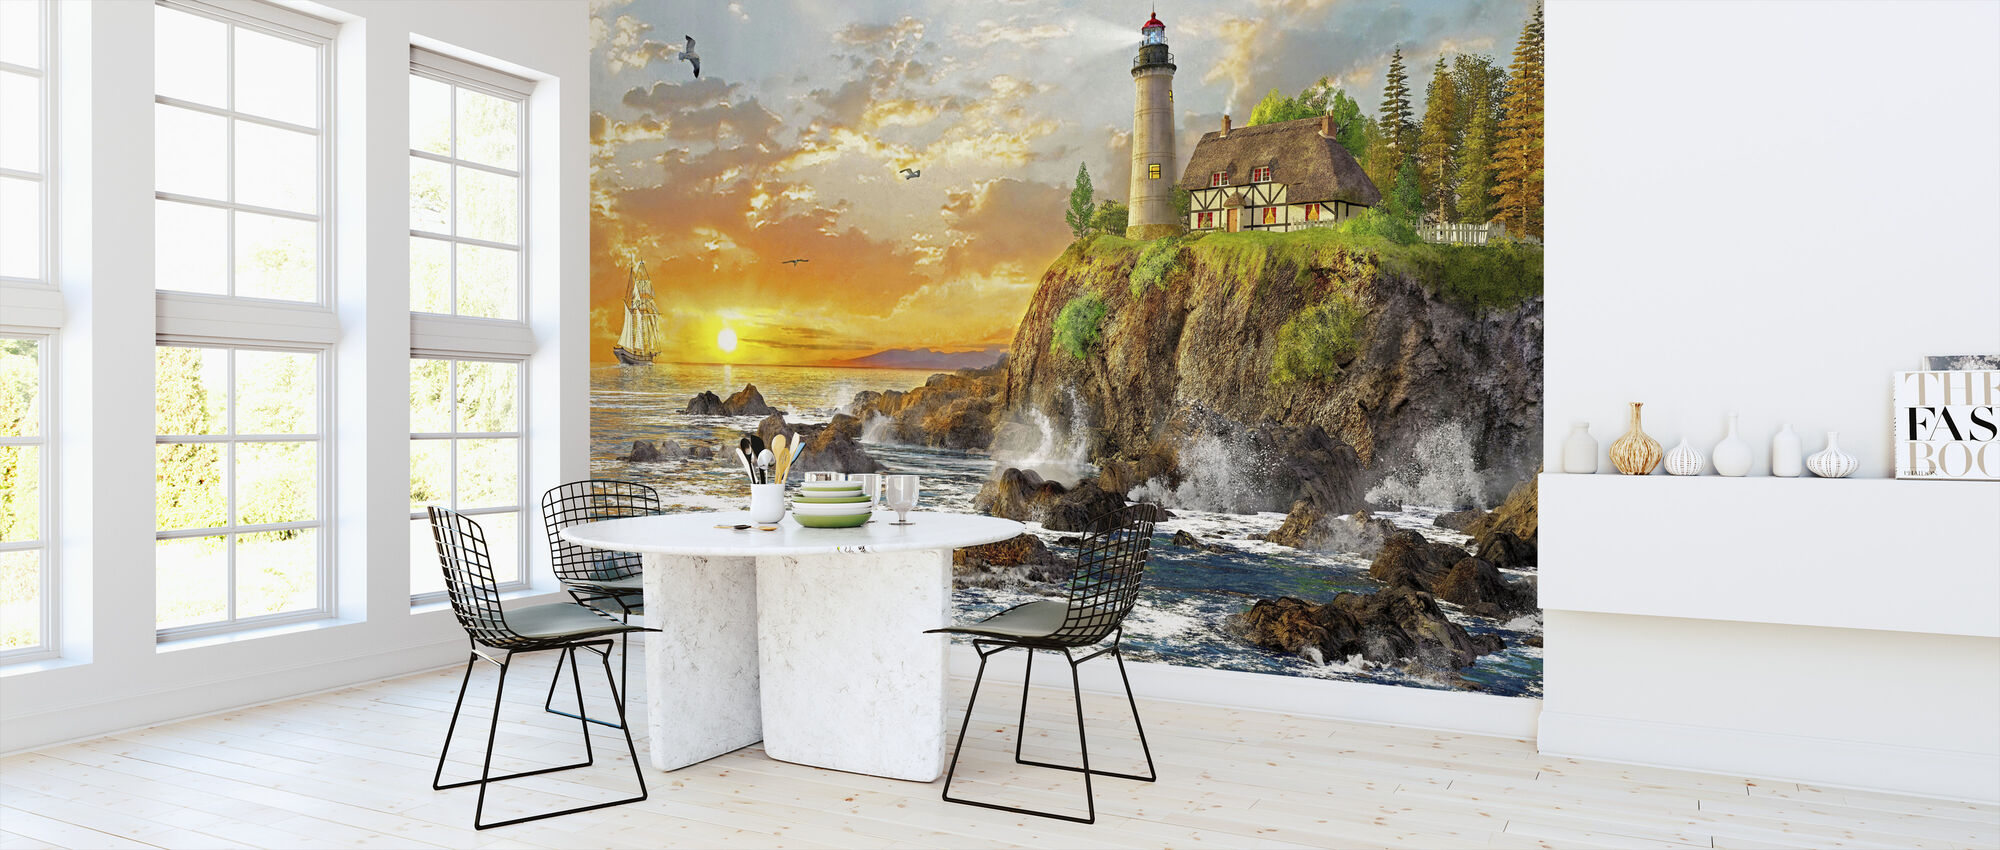 Craggy Cove - Wallpaper - Kitchen